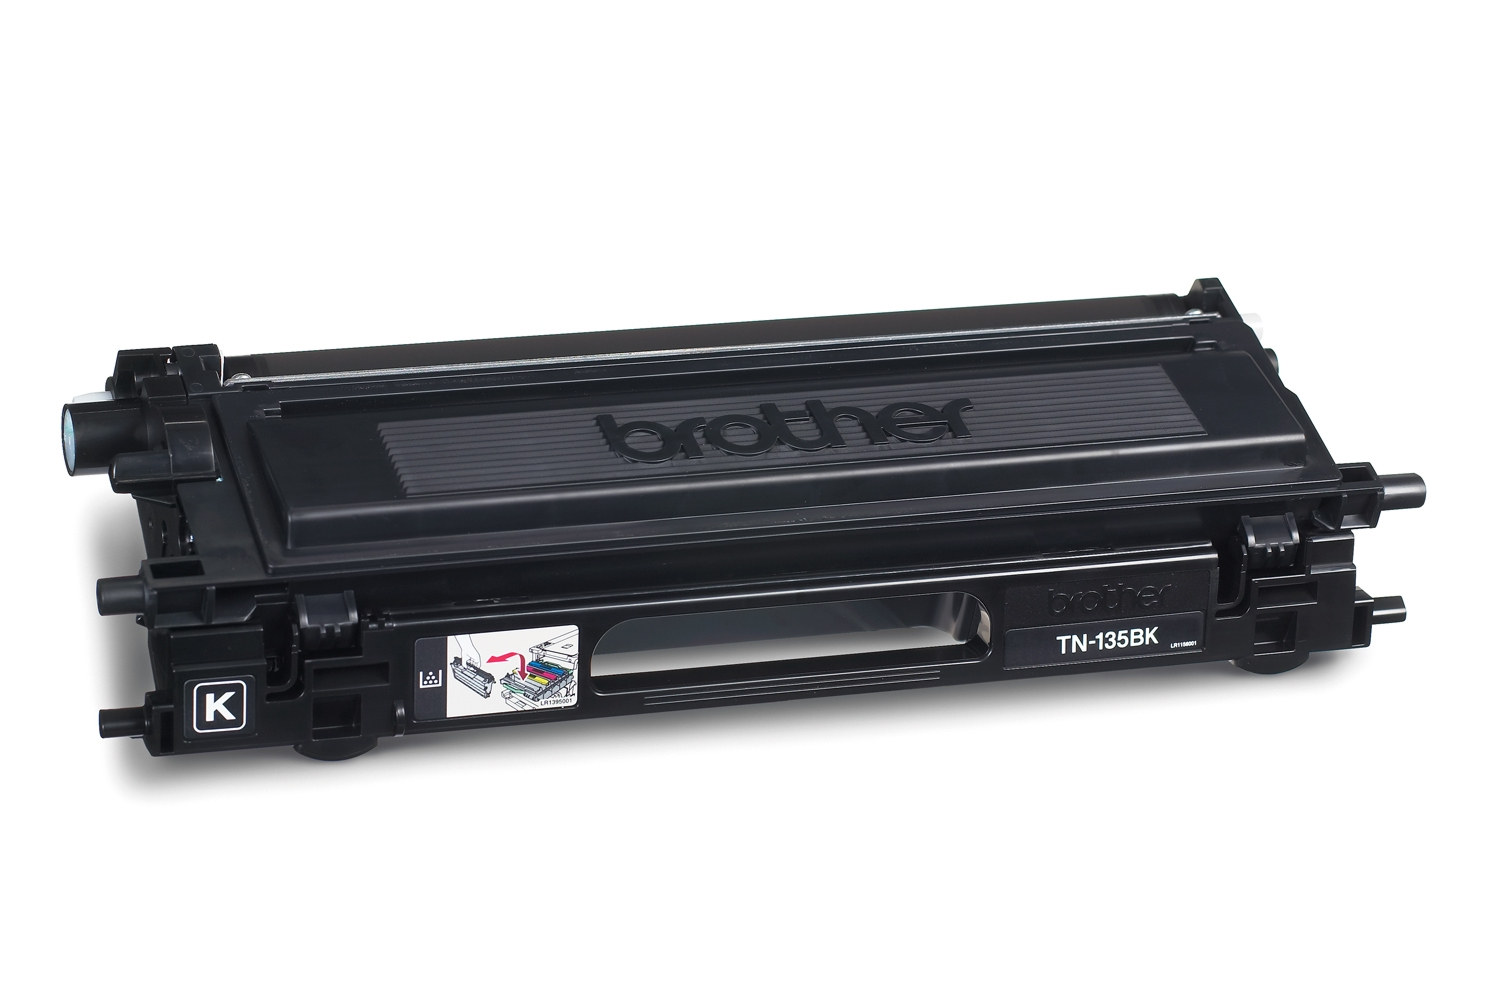 Remanufactured Brother TN135BK Toner Cartridge Black 5K TN135BK - rem01